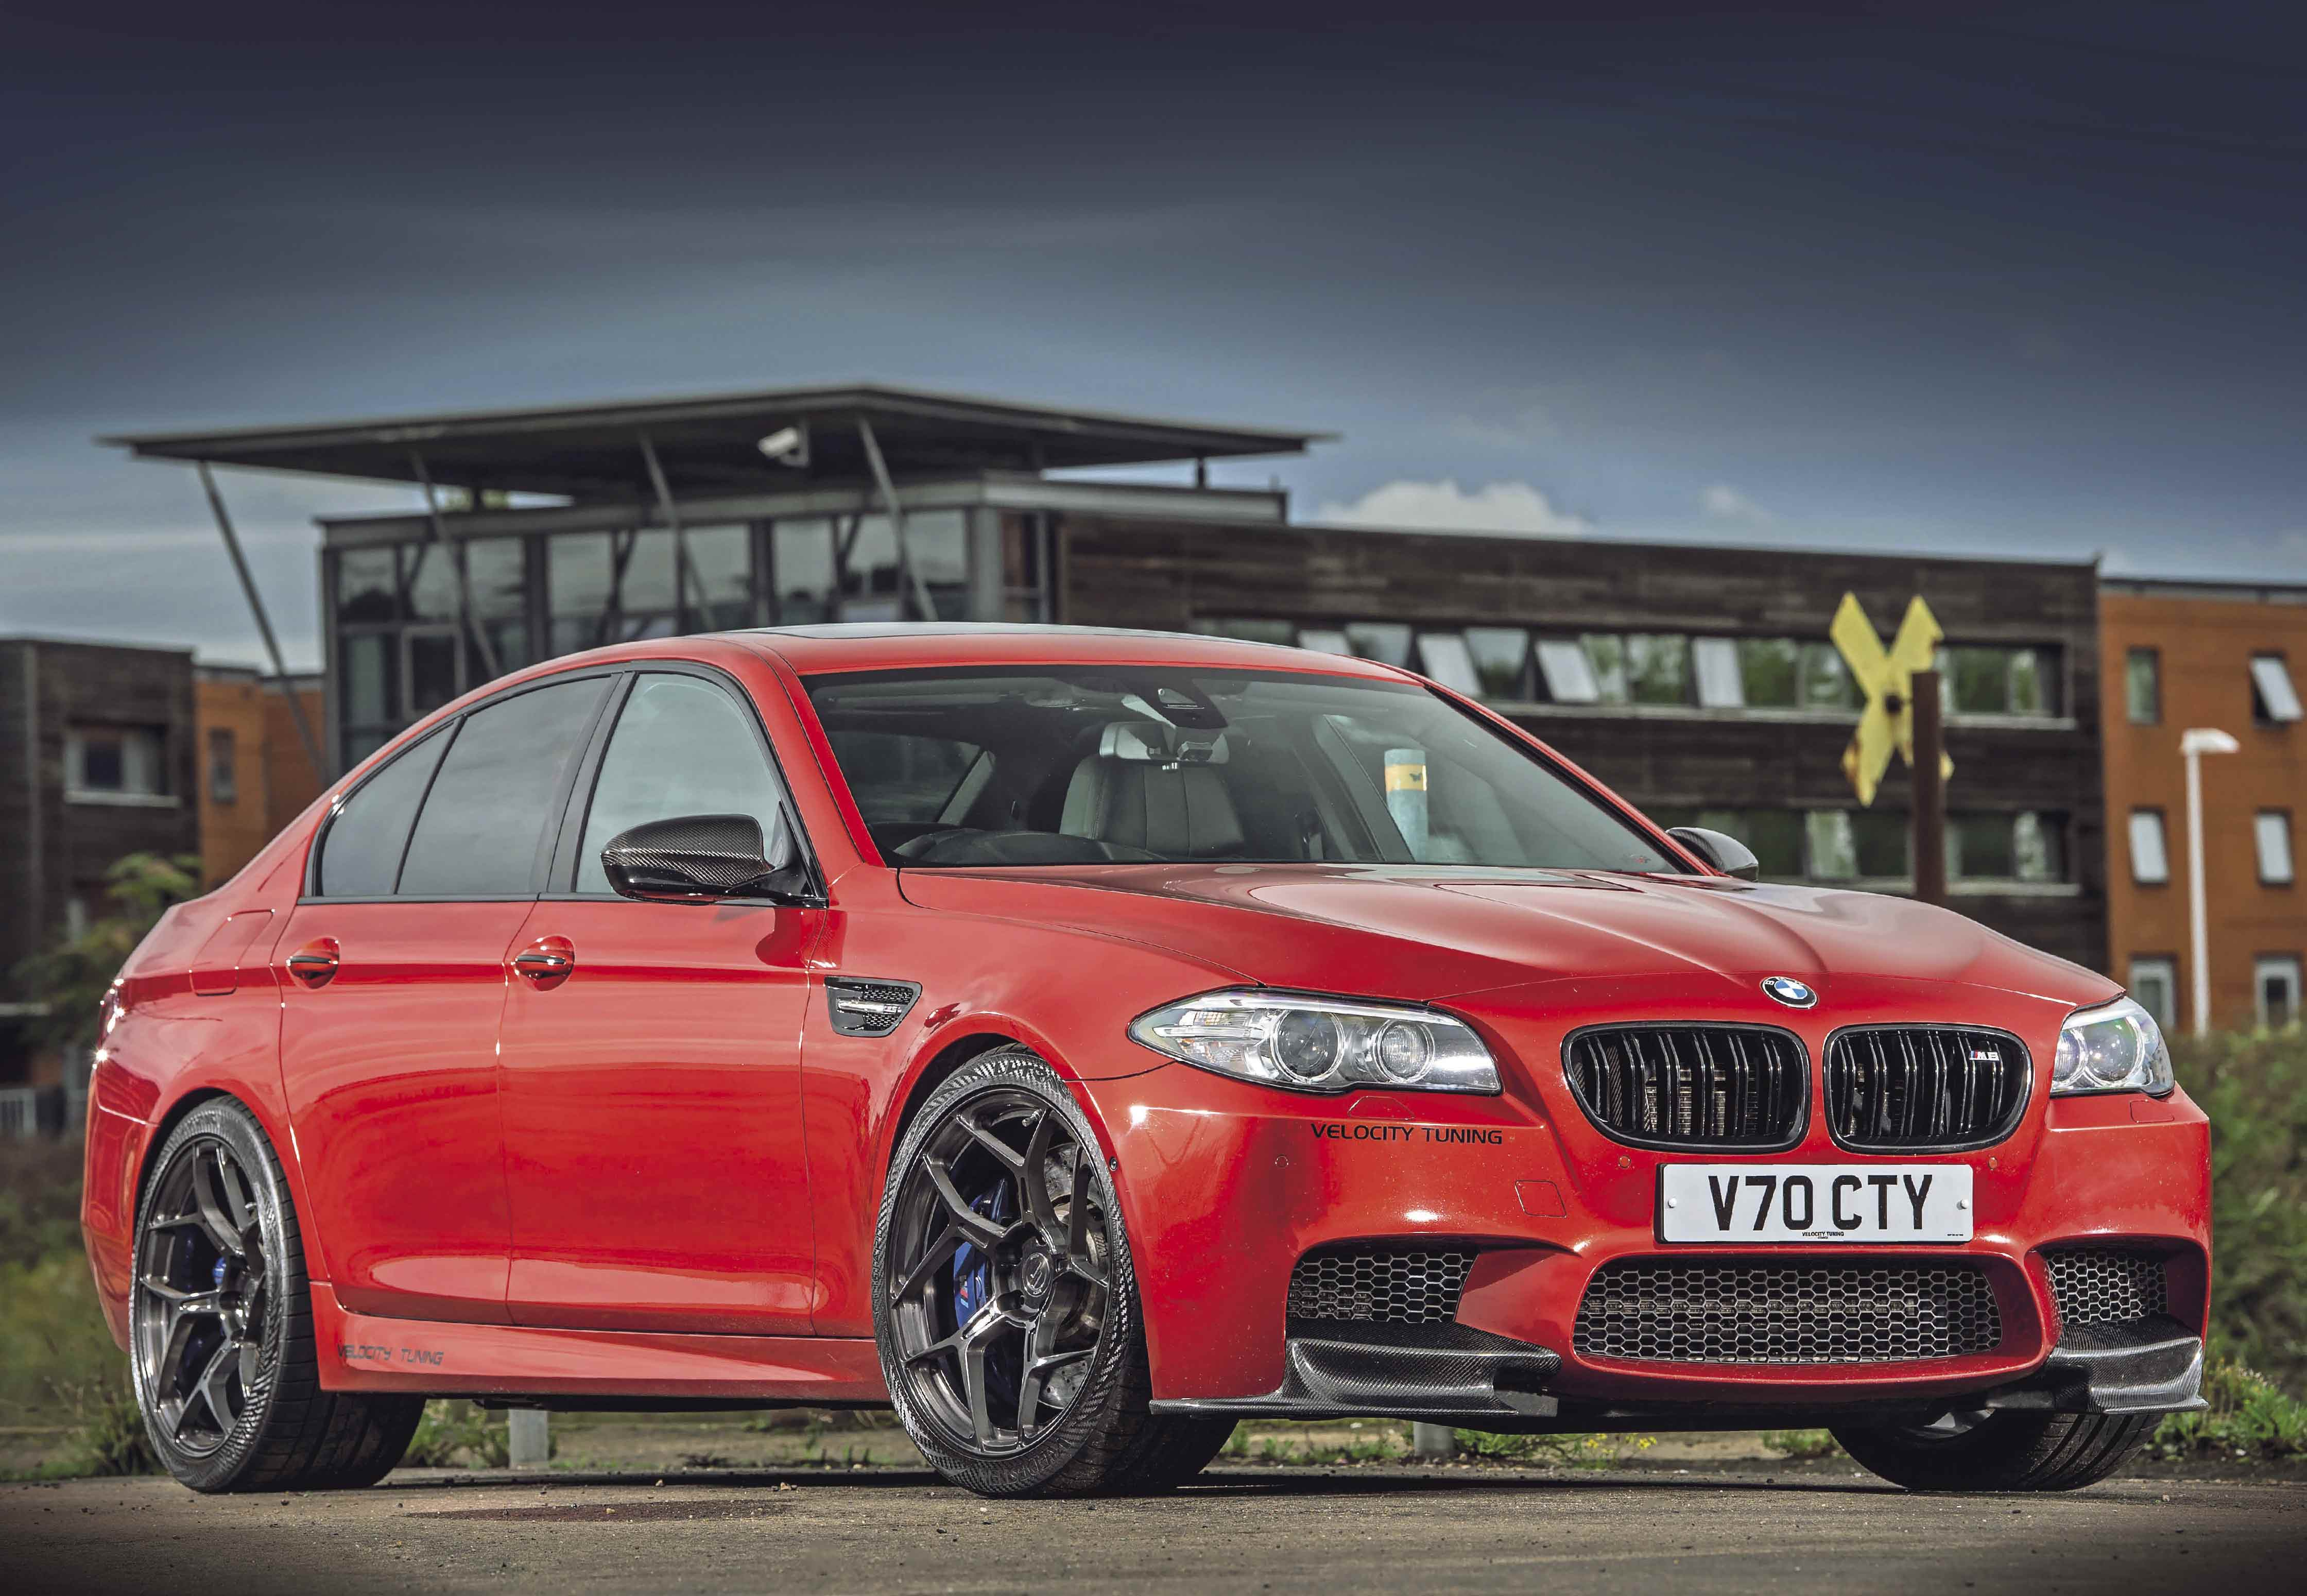 Uk S Fastest Bmw M5 F10 Ultimate 5 Series 1000bhp And 214mph Drive My Blogs Drive